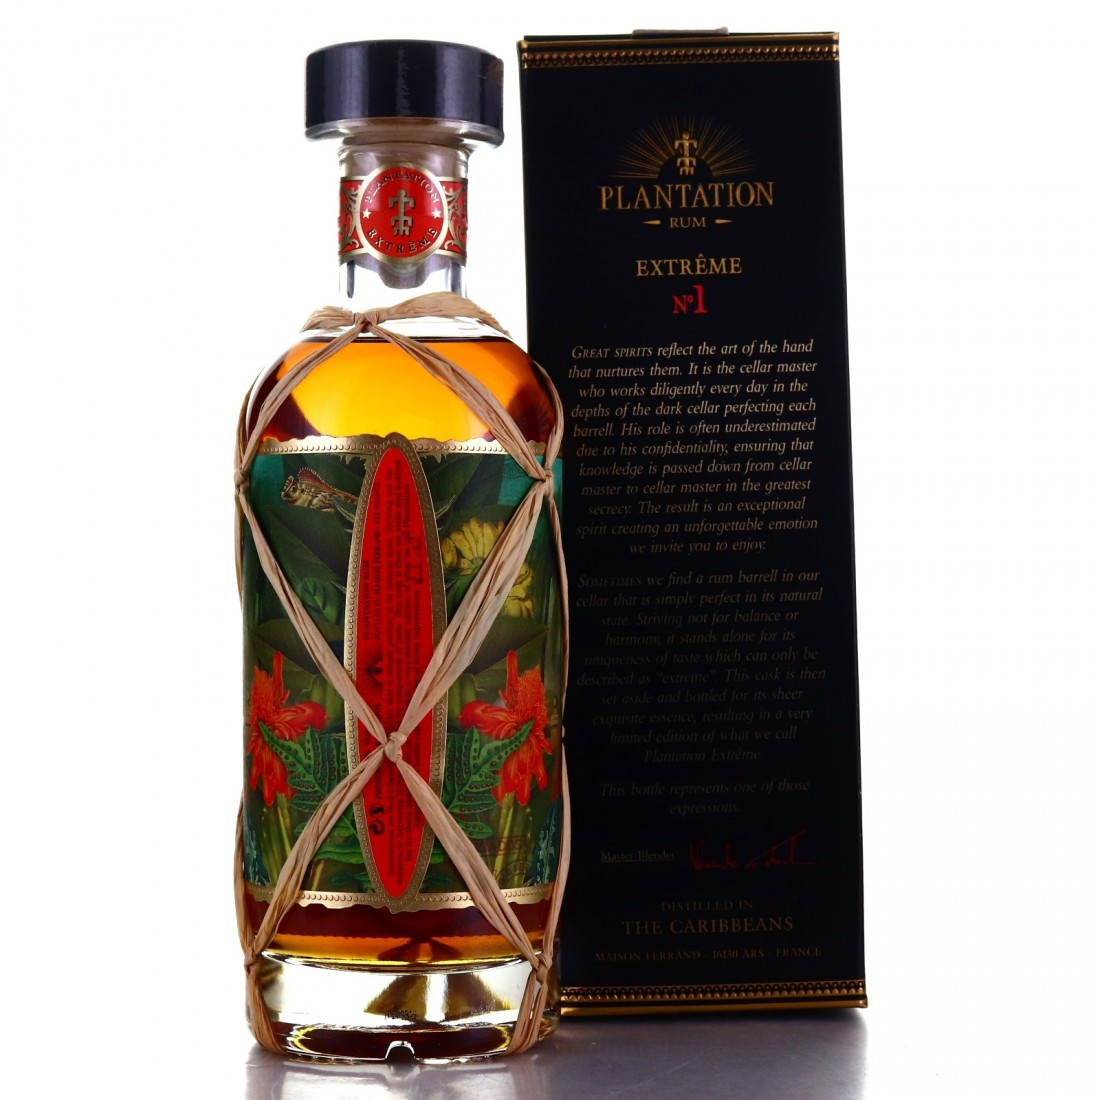 Barbados Rum 2005 Plantation 11 Year Old Extreme No.1 / LMDW 60th Anniversary